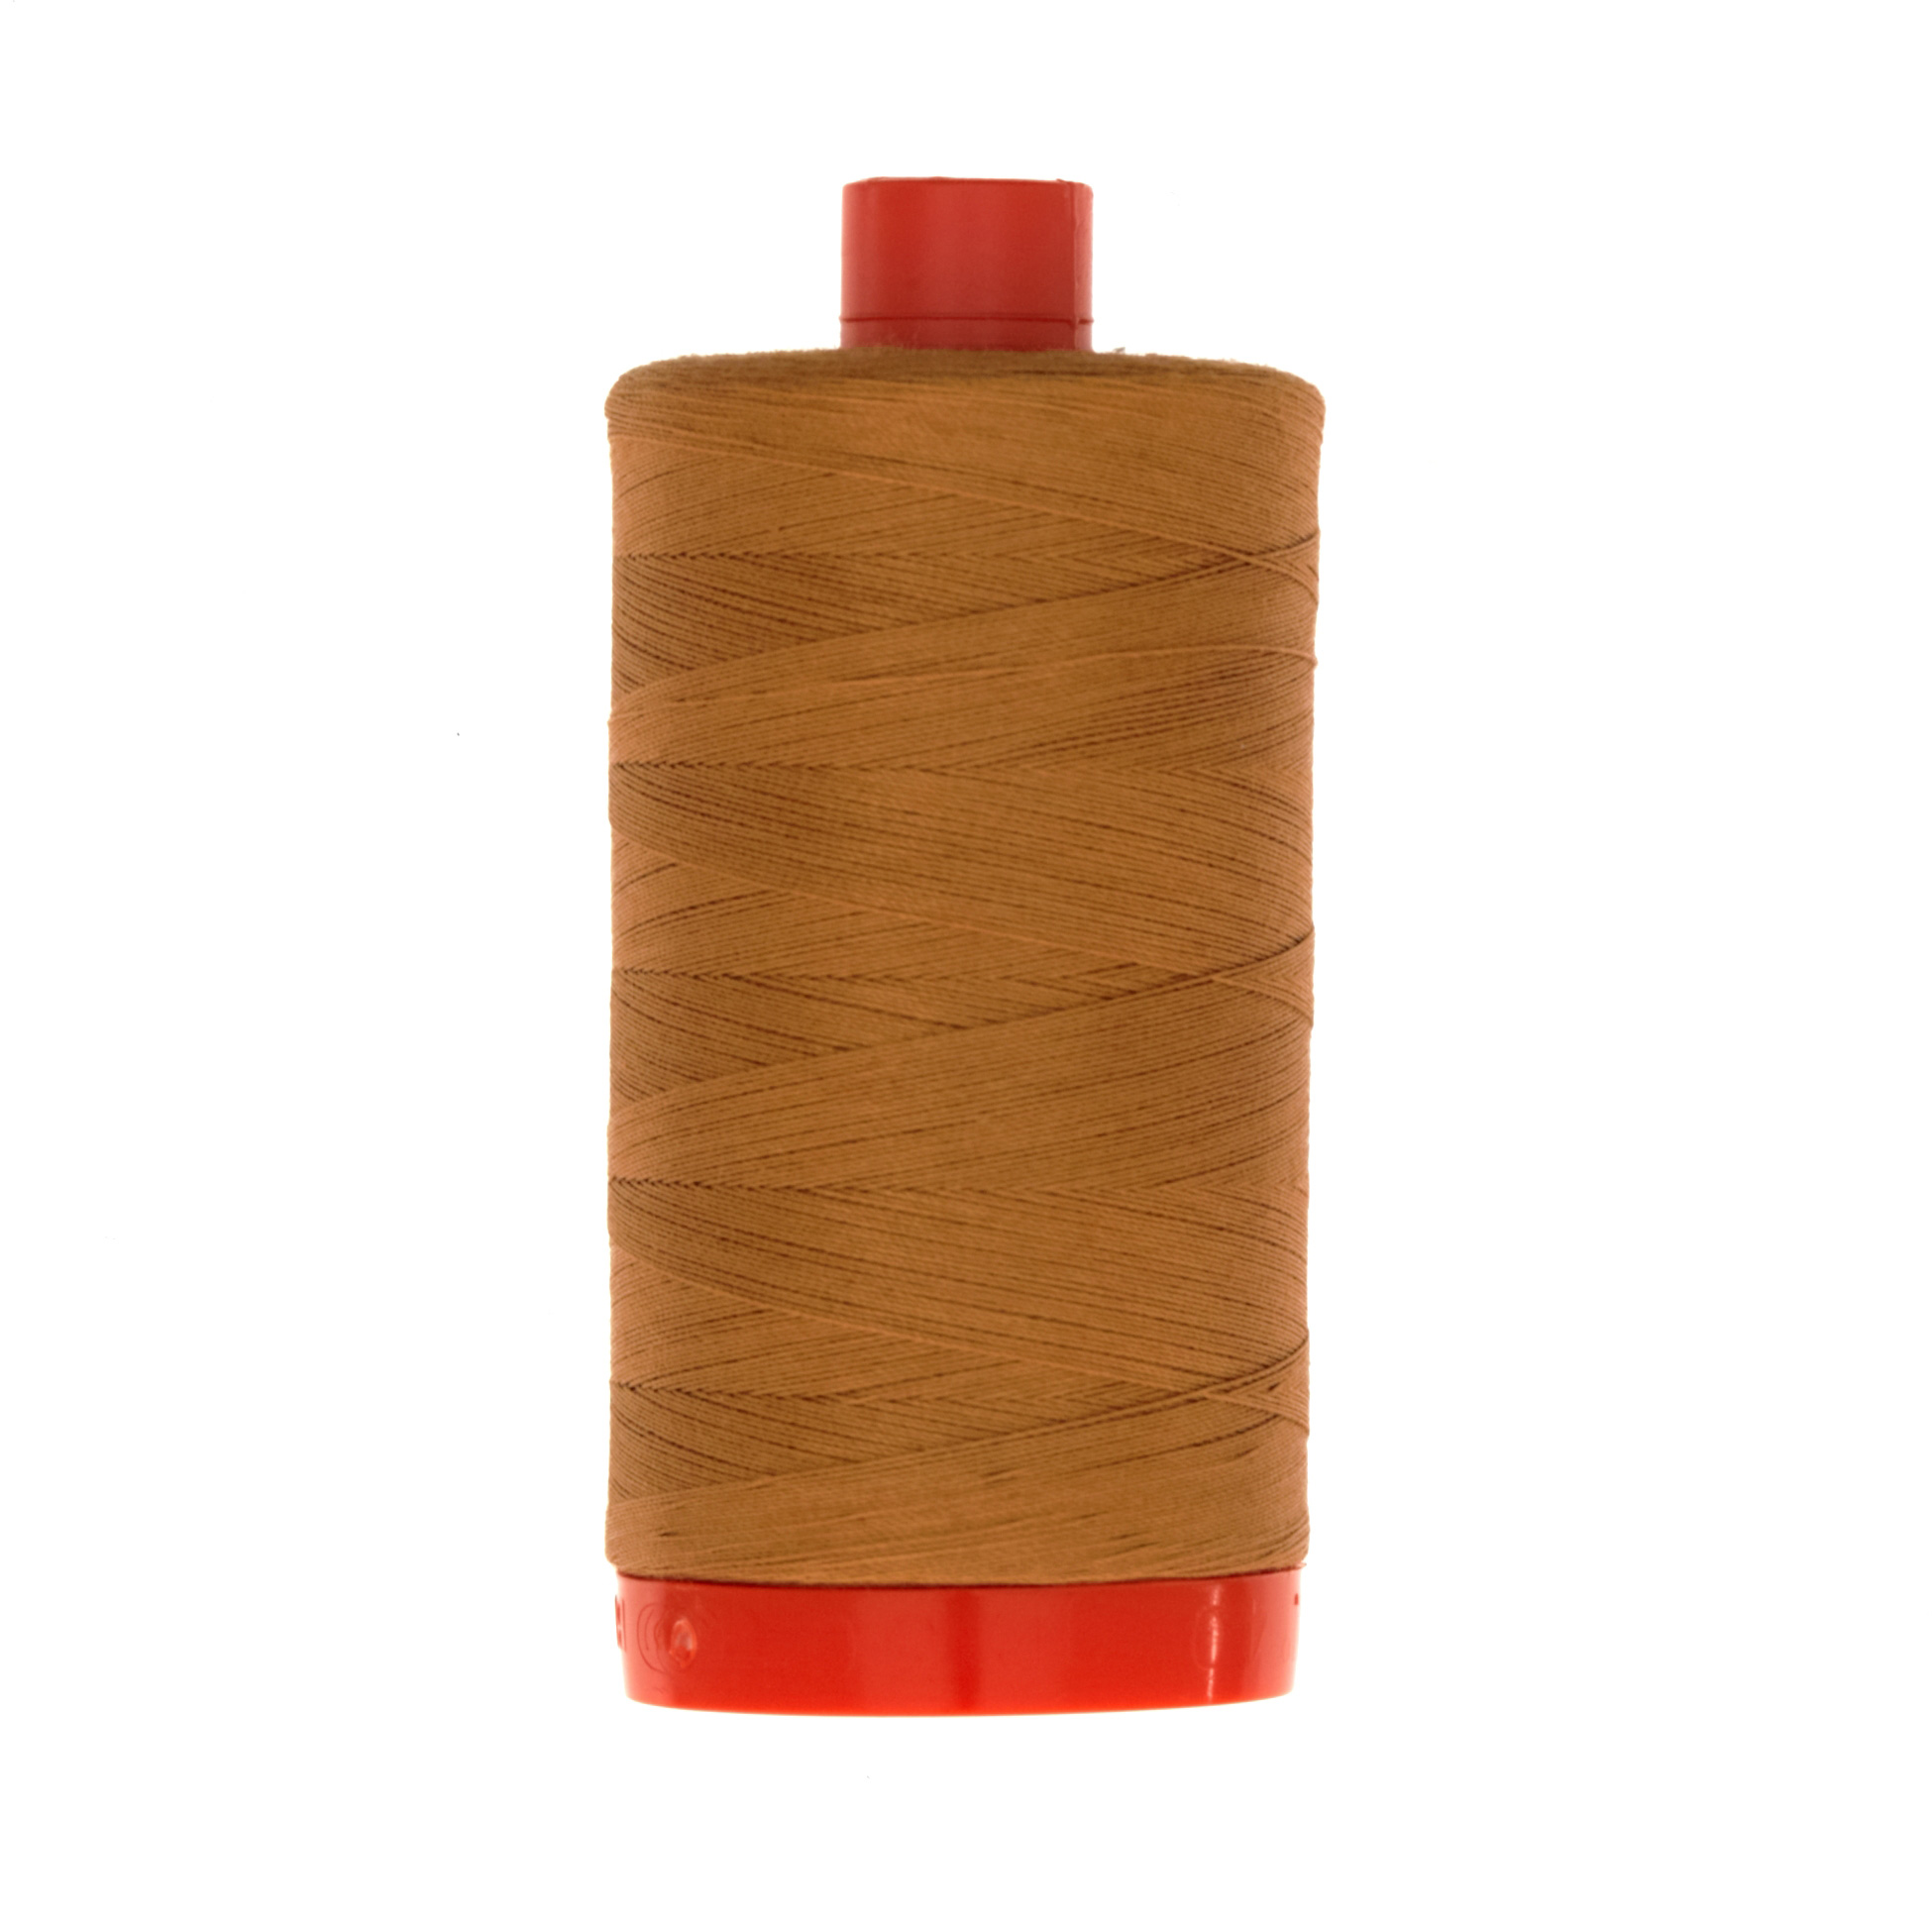 Aurifil Quilting Thread 50wt Light Cinnamon